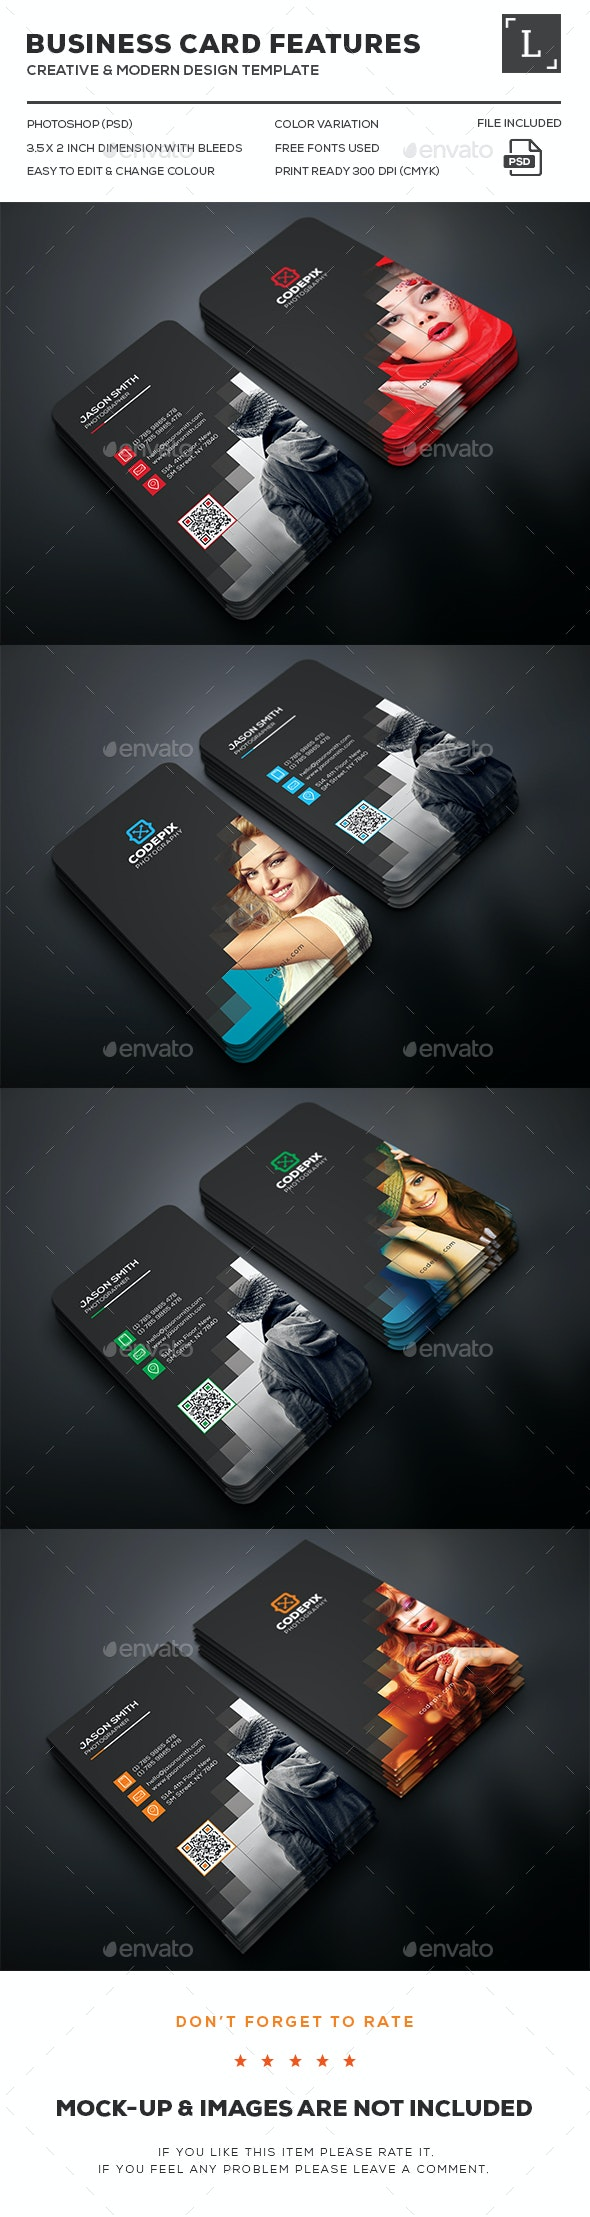 Photography Business Cards - Business Cards Print Templates